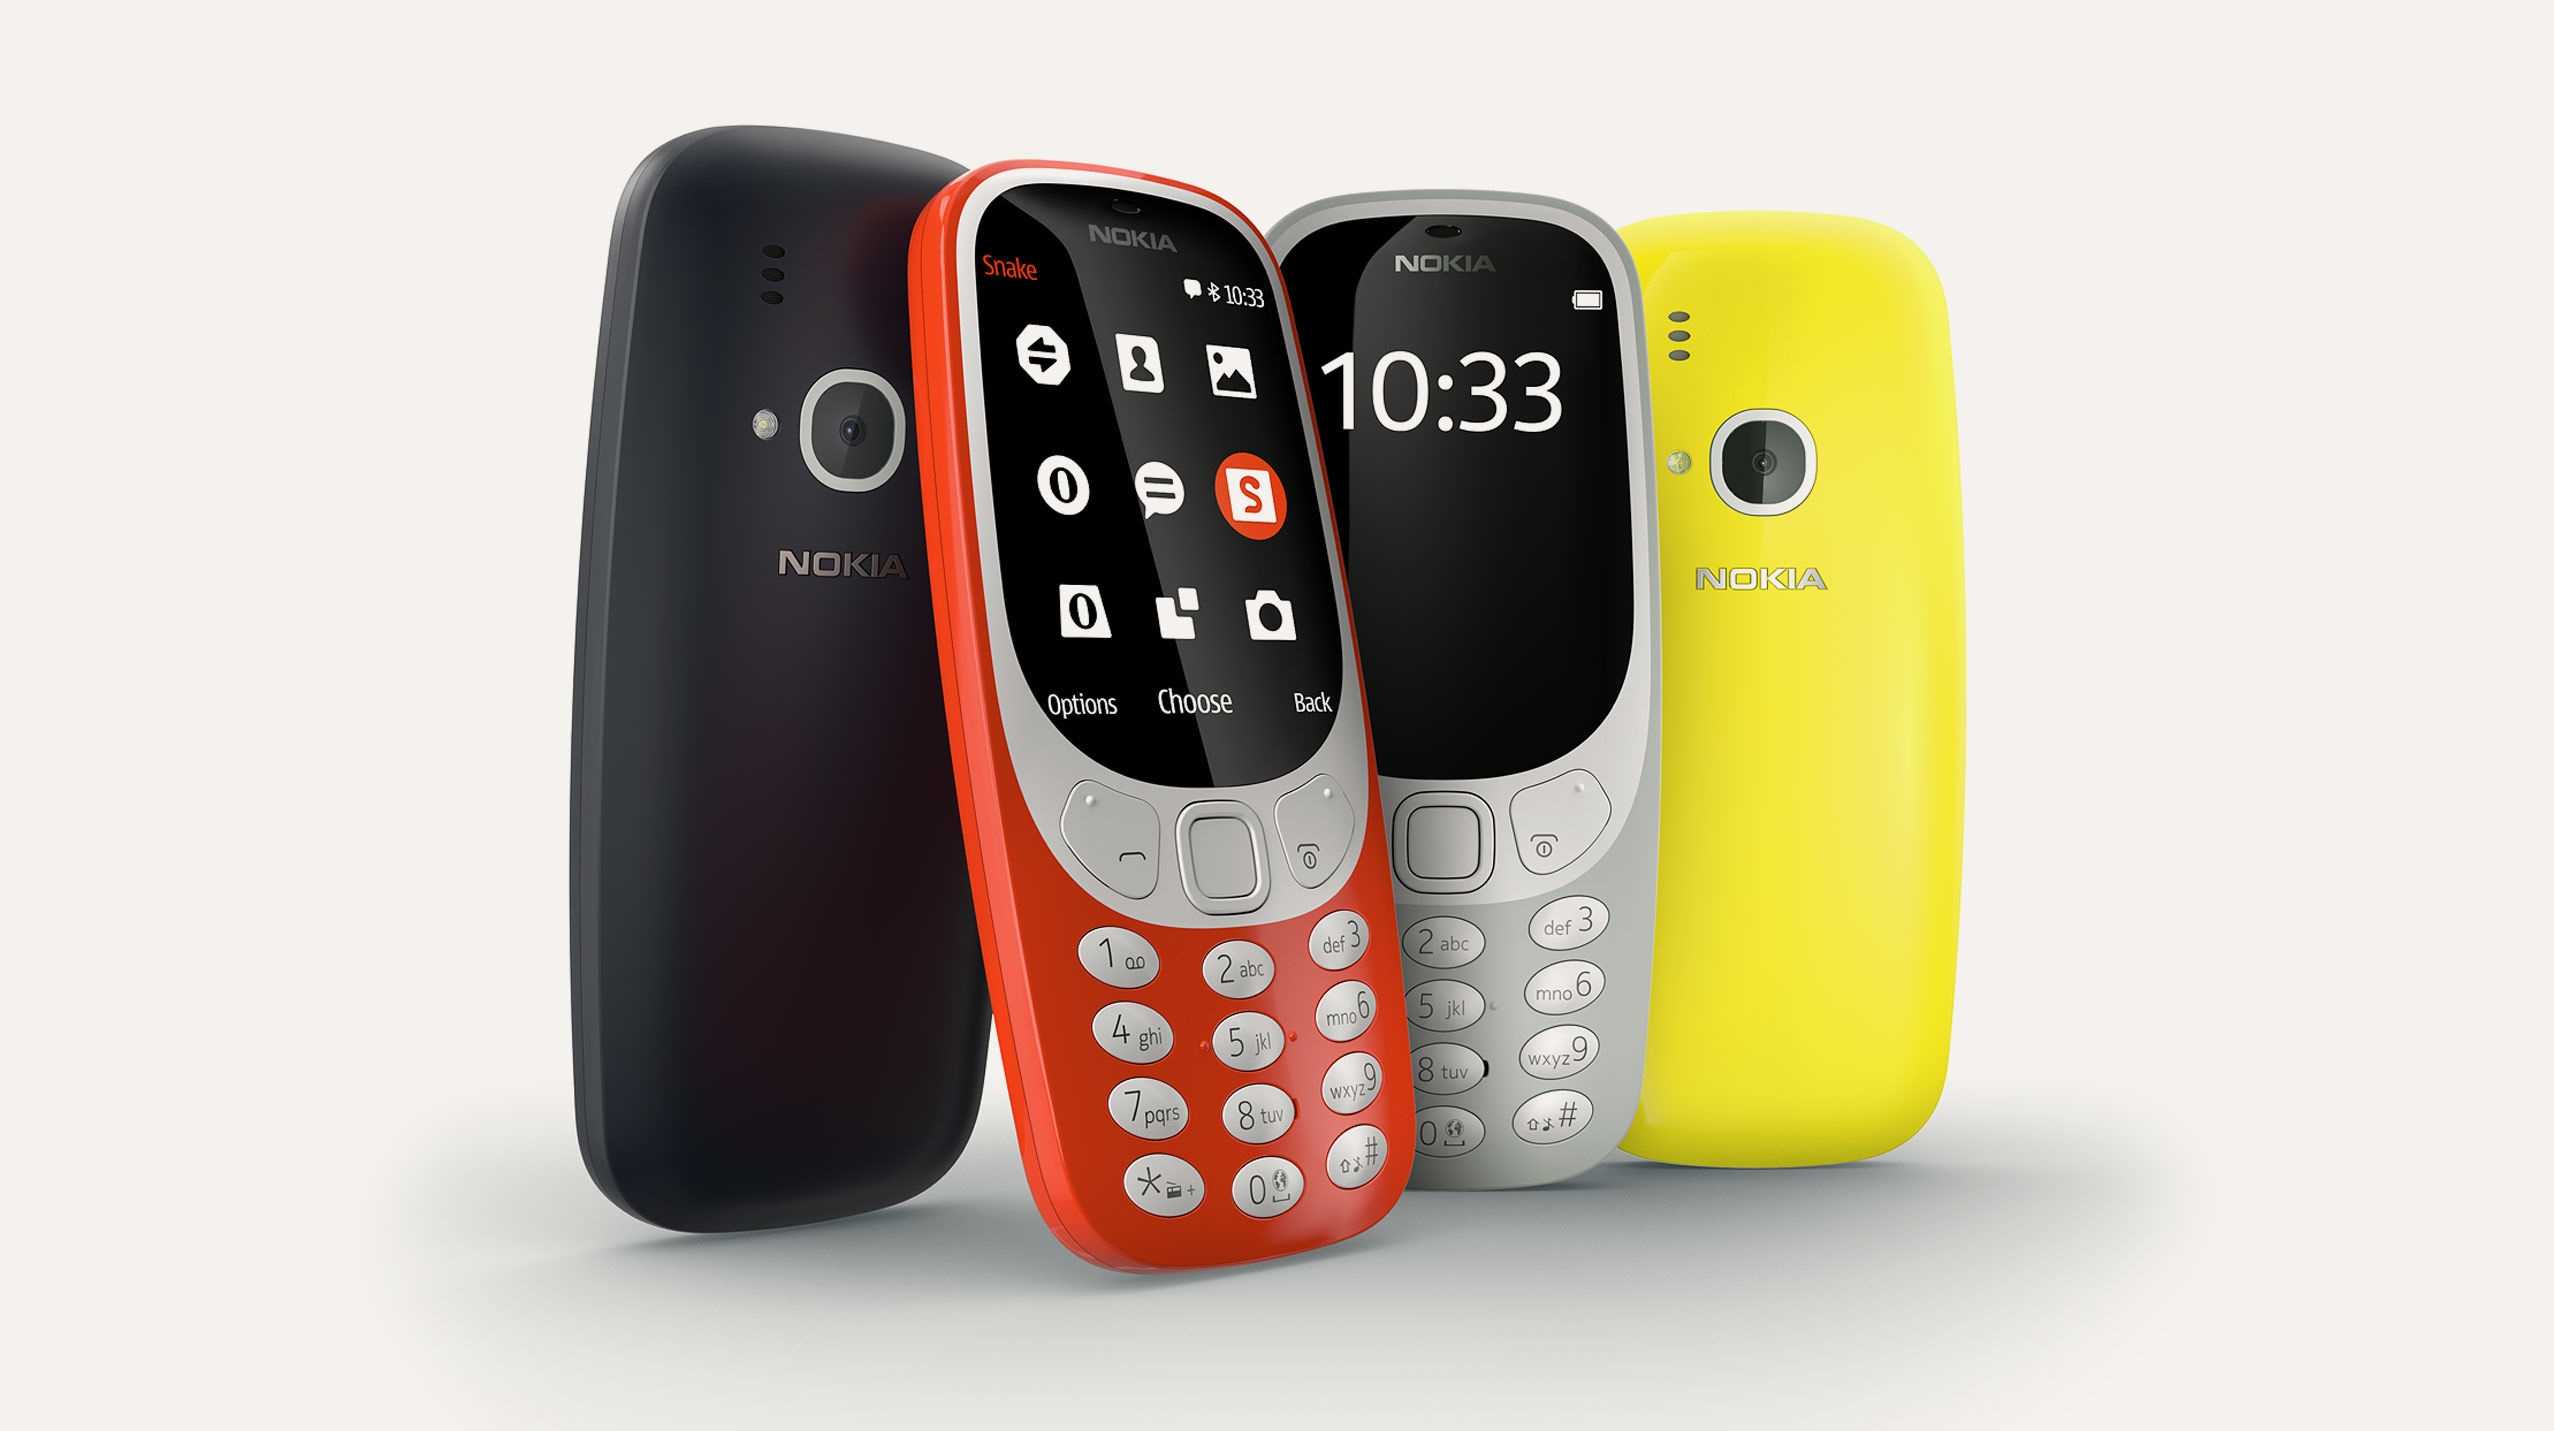 Clove halts pre-orders for Nokia devices despite high demand